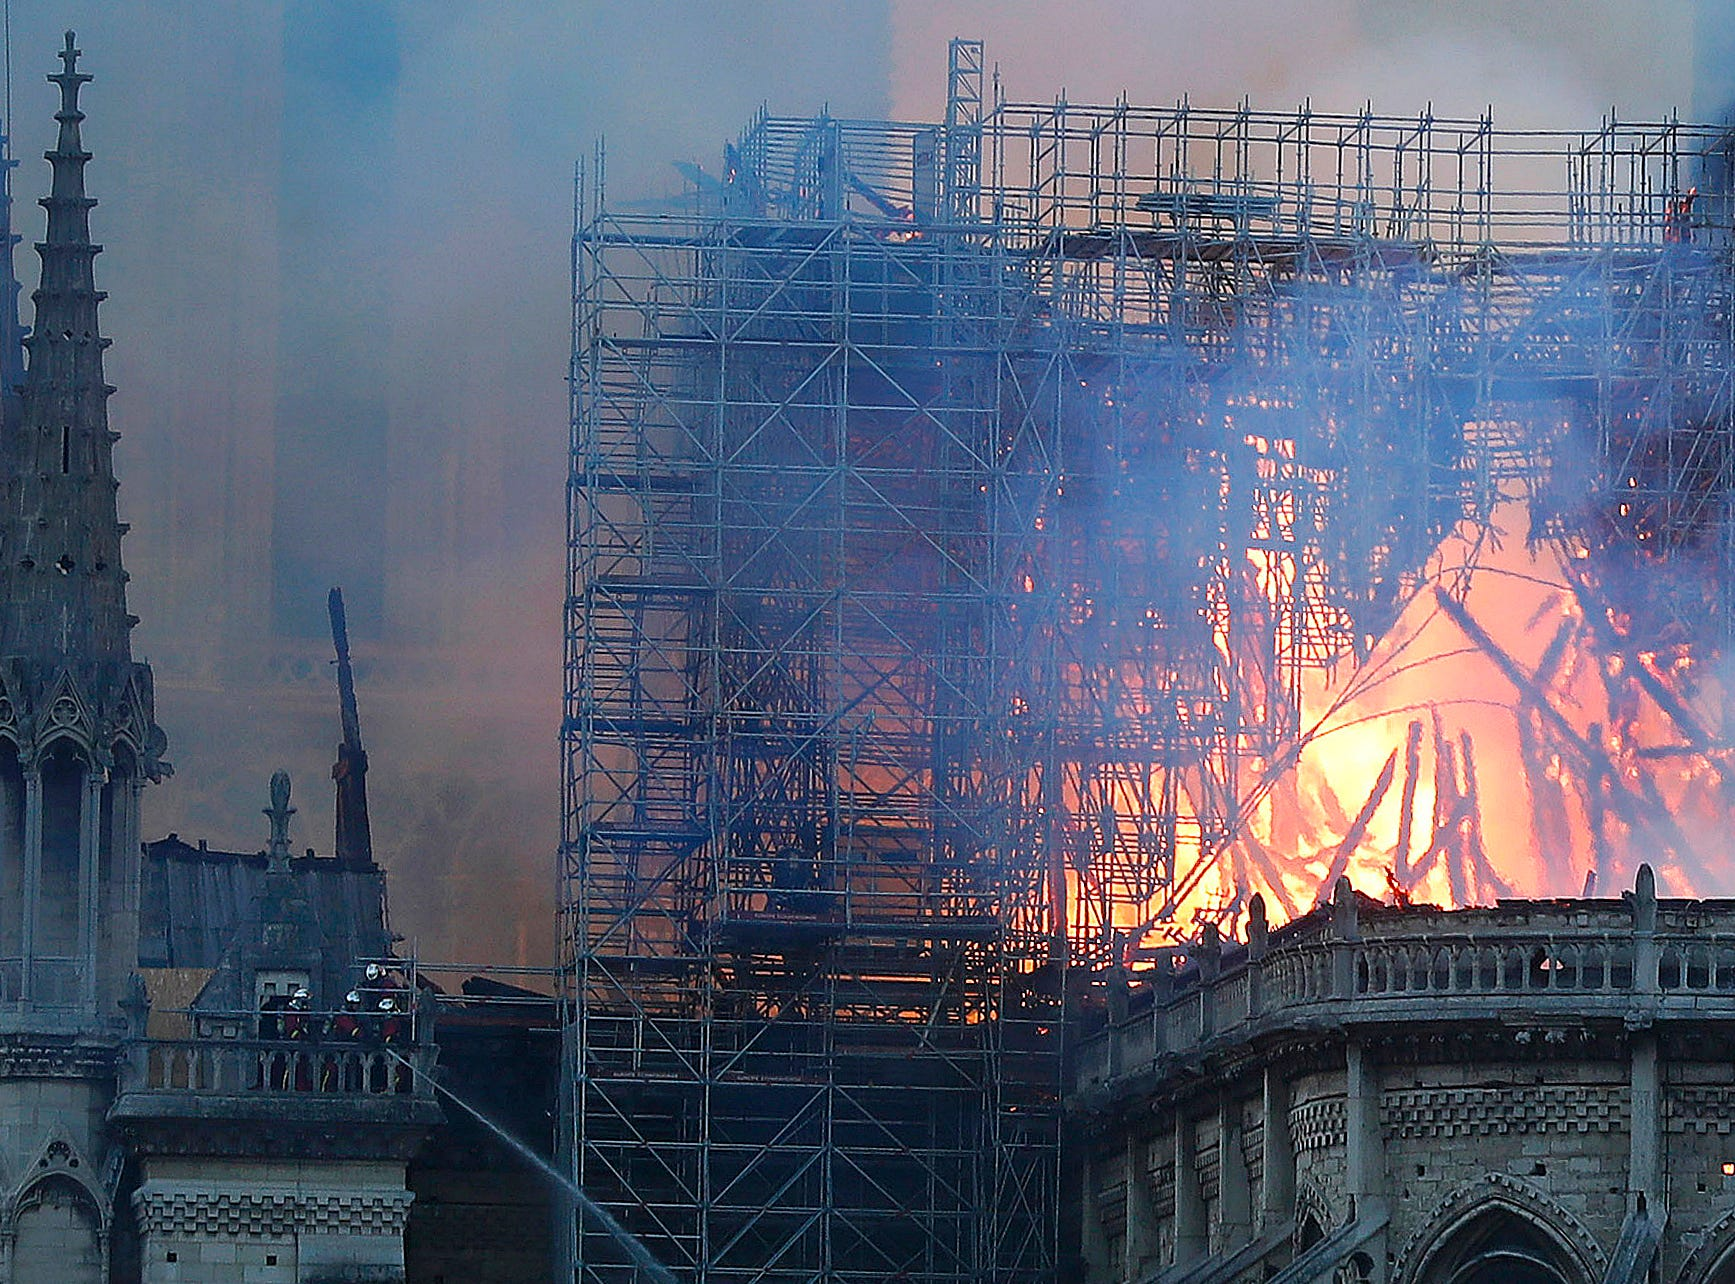 Firefighters tackle the blaze as flames and smoke rise from Notre Dame cathedral as it burns in Paris, Monday, April 15, 2019. Massive plumes of yellow brown smoke is filling the air above Notre Dame Cathedral and ash is falling on tourists and others around the island that marks the center of Paris. (AP Photo/Thibault Camus)